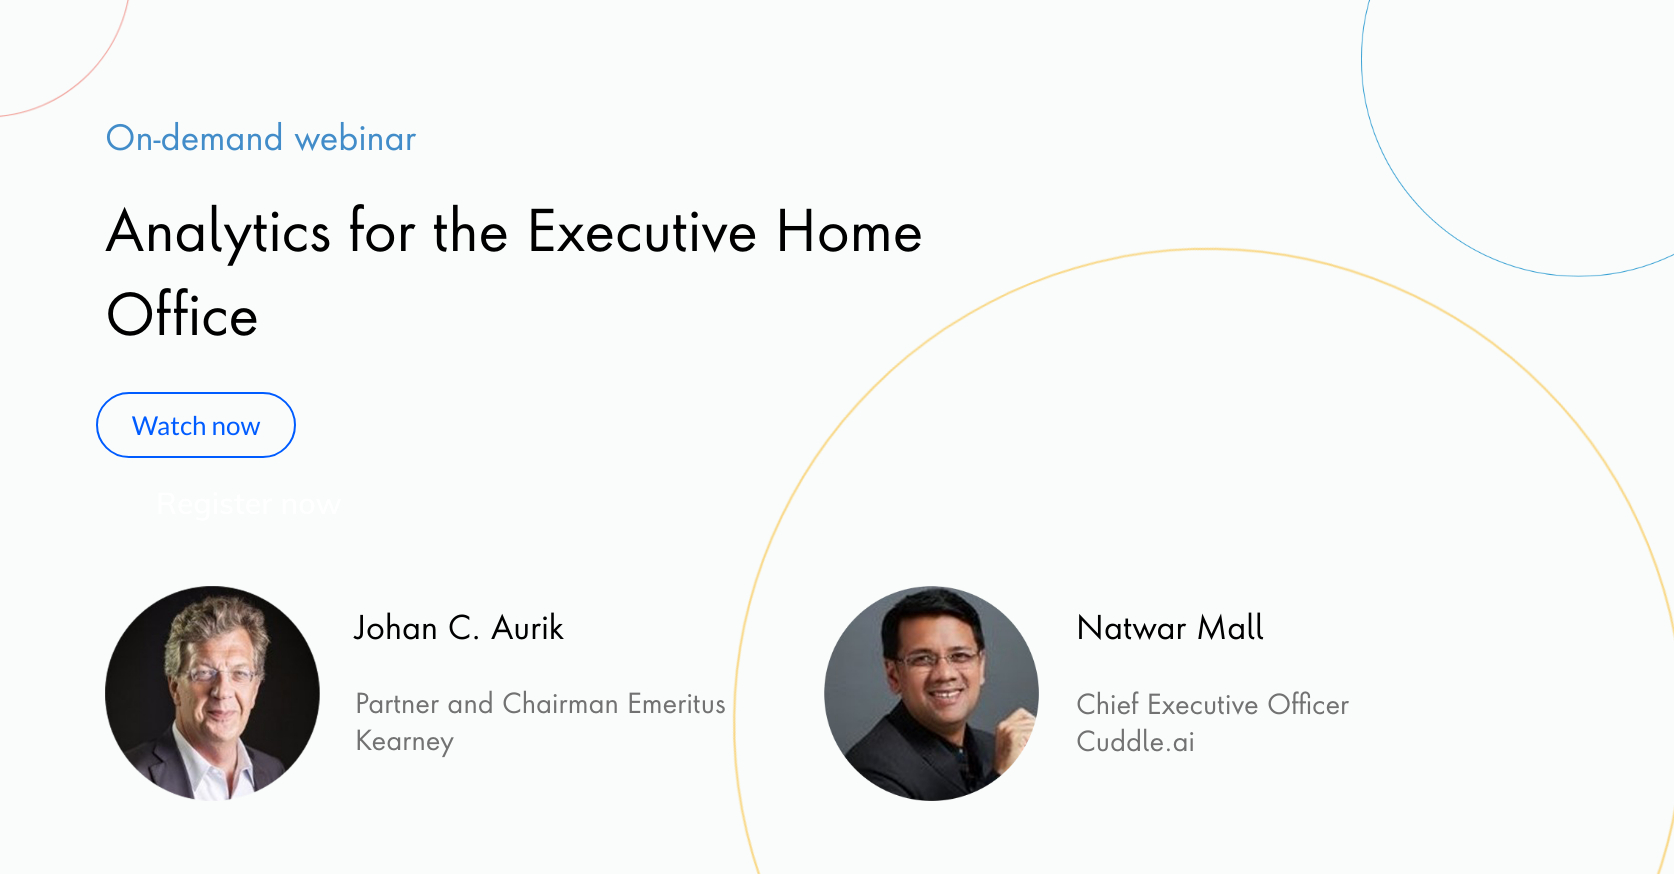 Analytics for the Executive Home Office